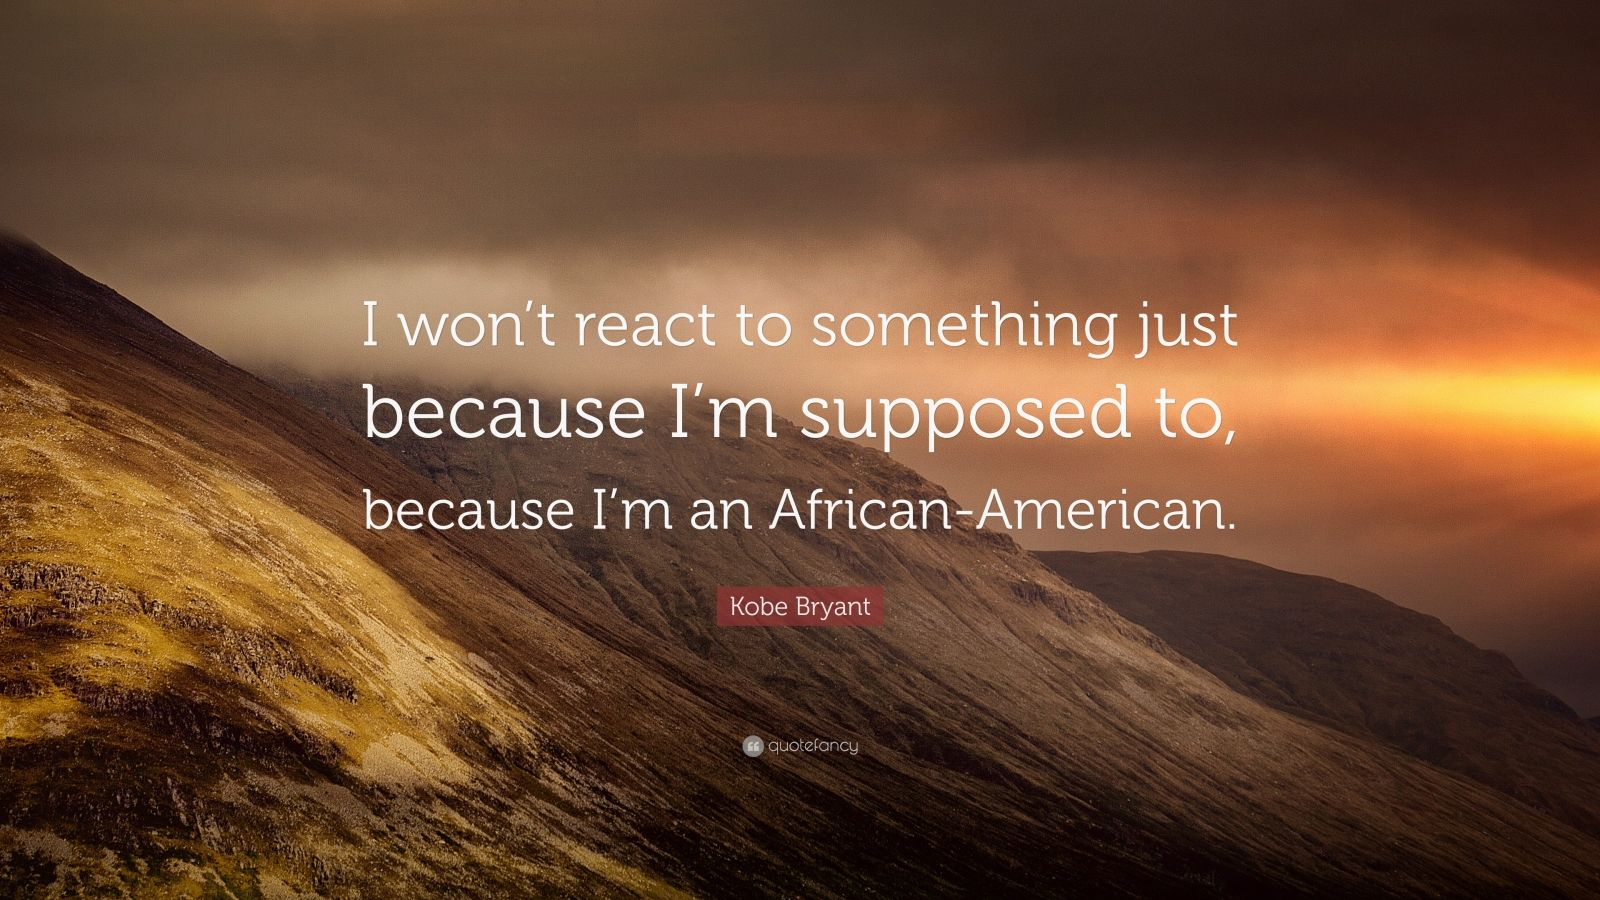 """Kobe Bryant Quote: """"I won't react to something just because I'm supposed to, because I'm an African-American."""""""